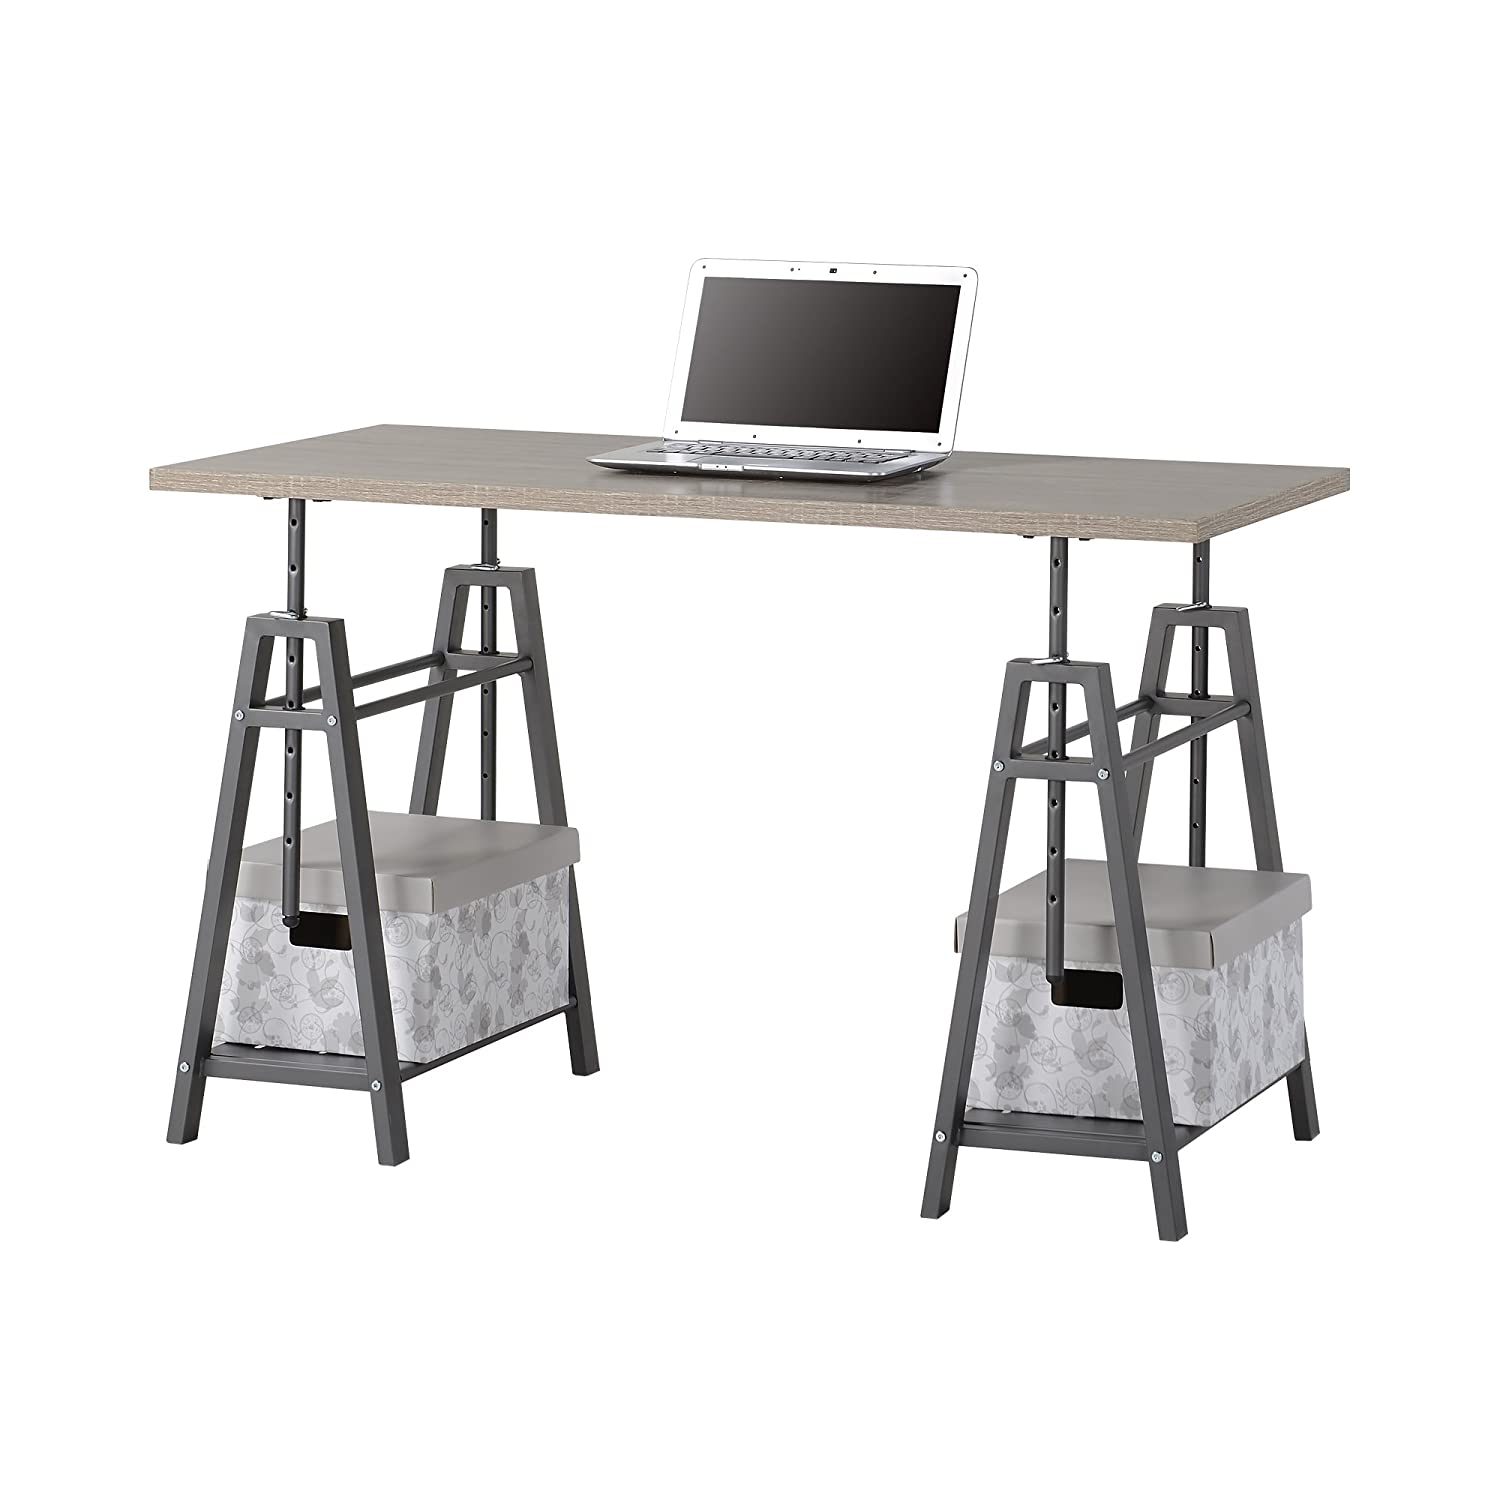 HOMESTAR Z1430261 Desk, 47.2 x 23.2 x 29.9 inches, Reclaimed Wood